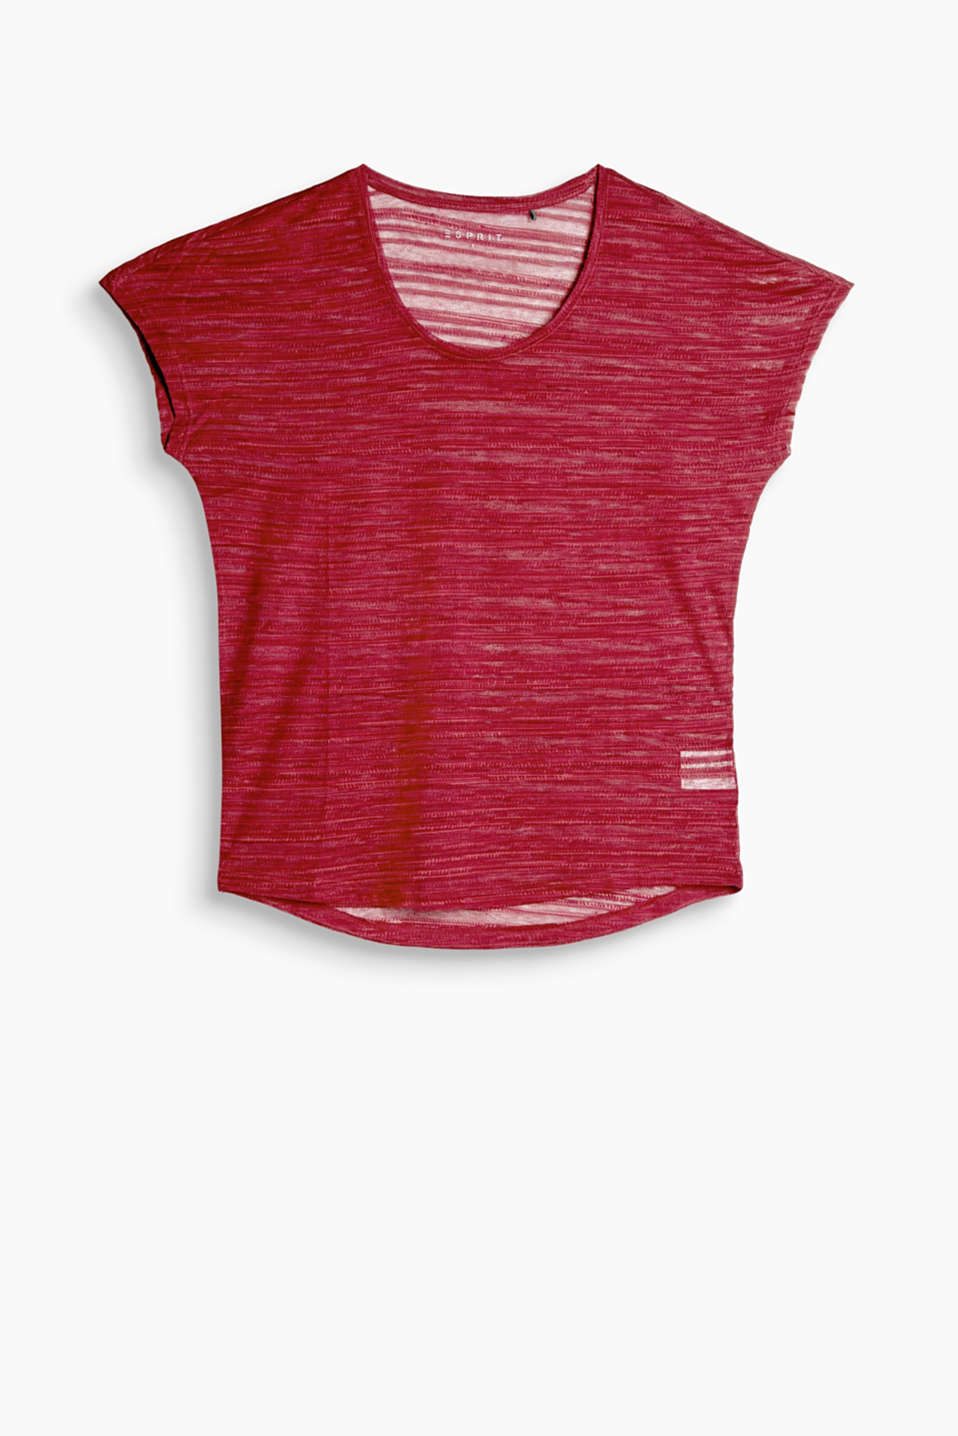 Silkeslen T-shirt med burn out-effekter, E-DRY